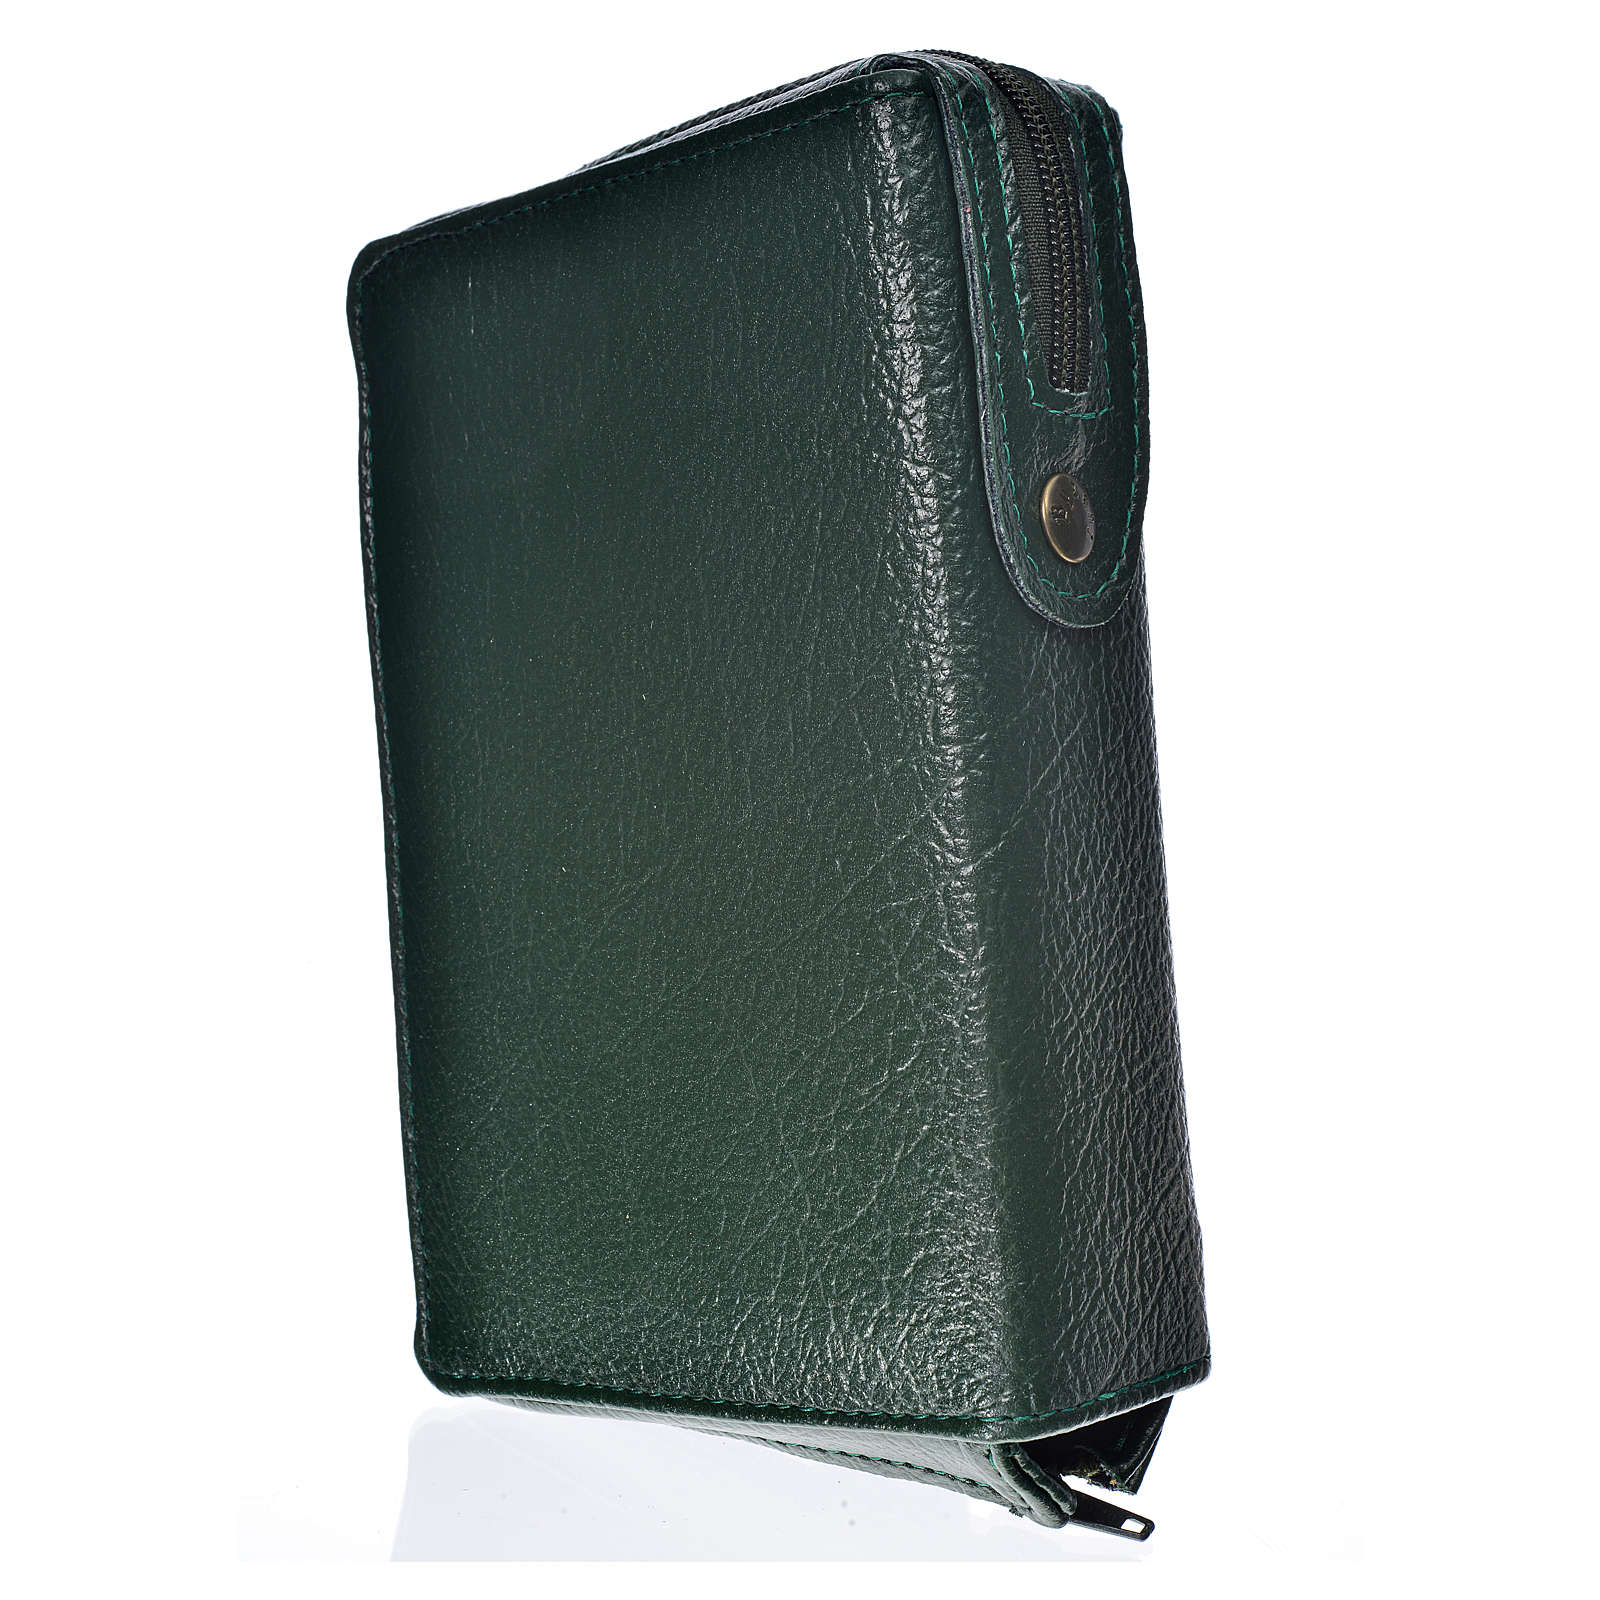 Hardcover New Jerusalem Bible green bonded leather with Holy Family image 4